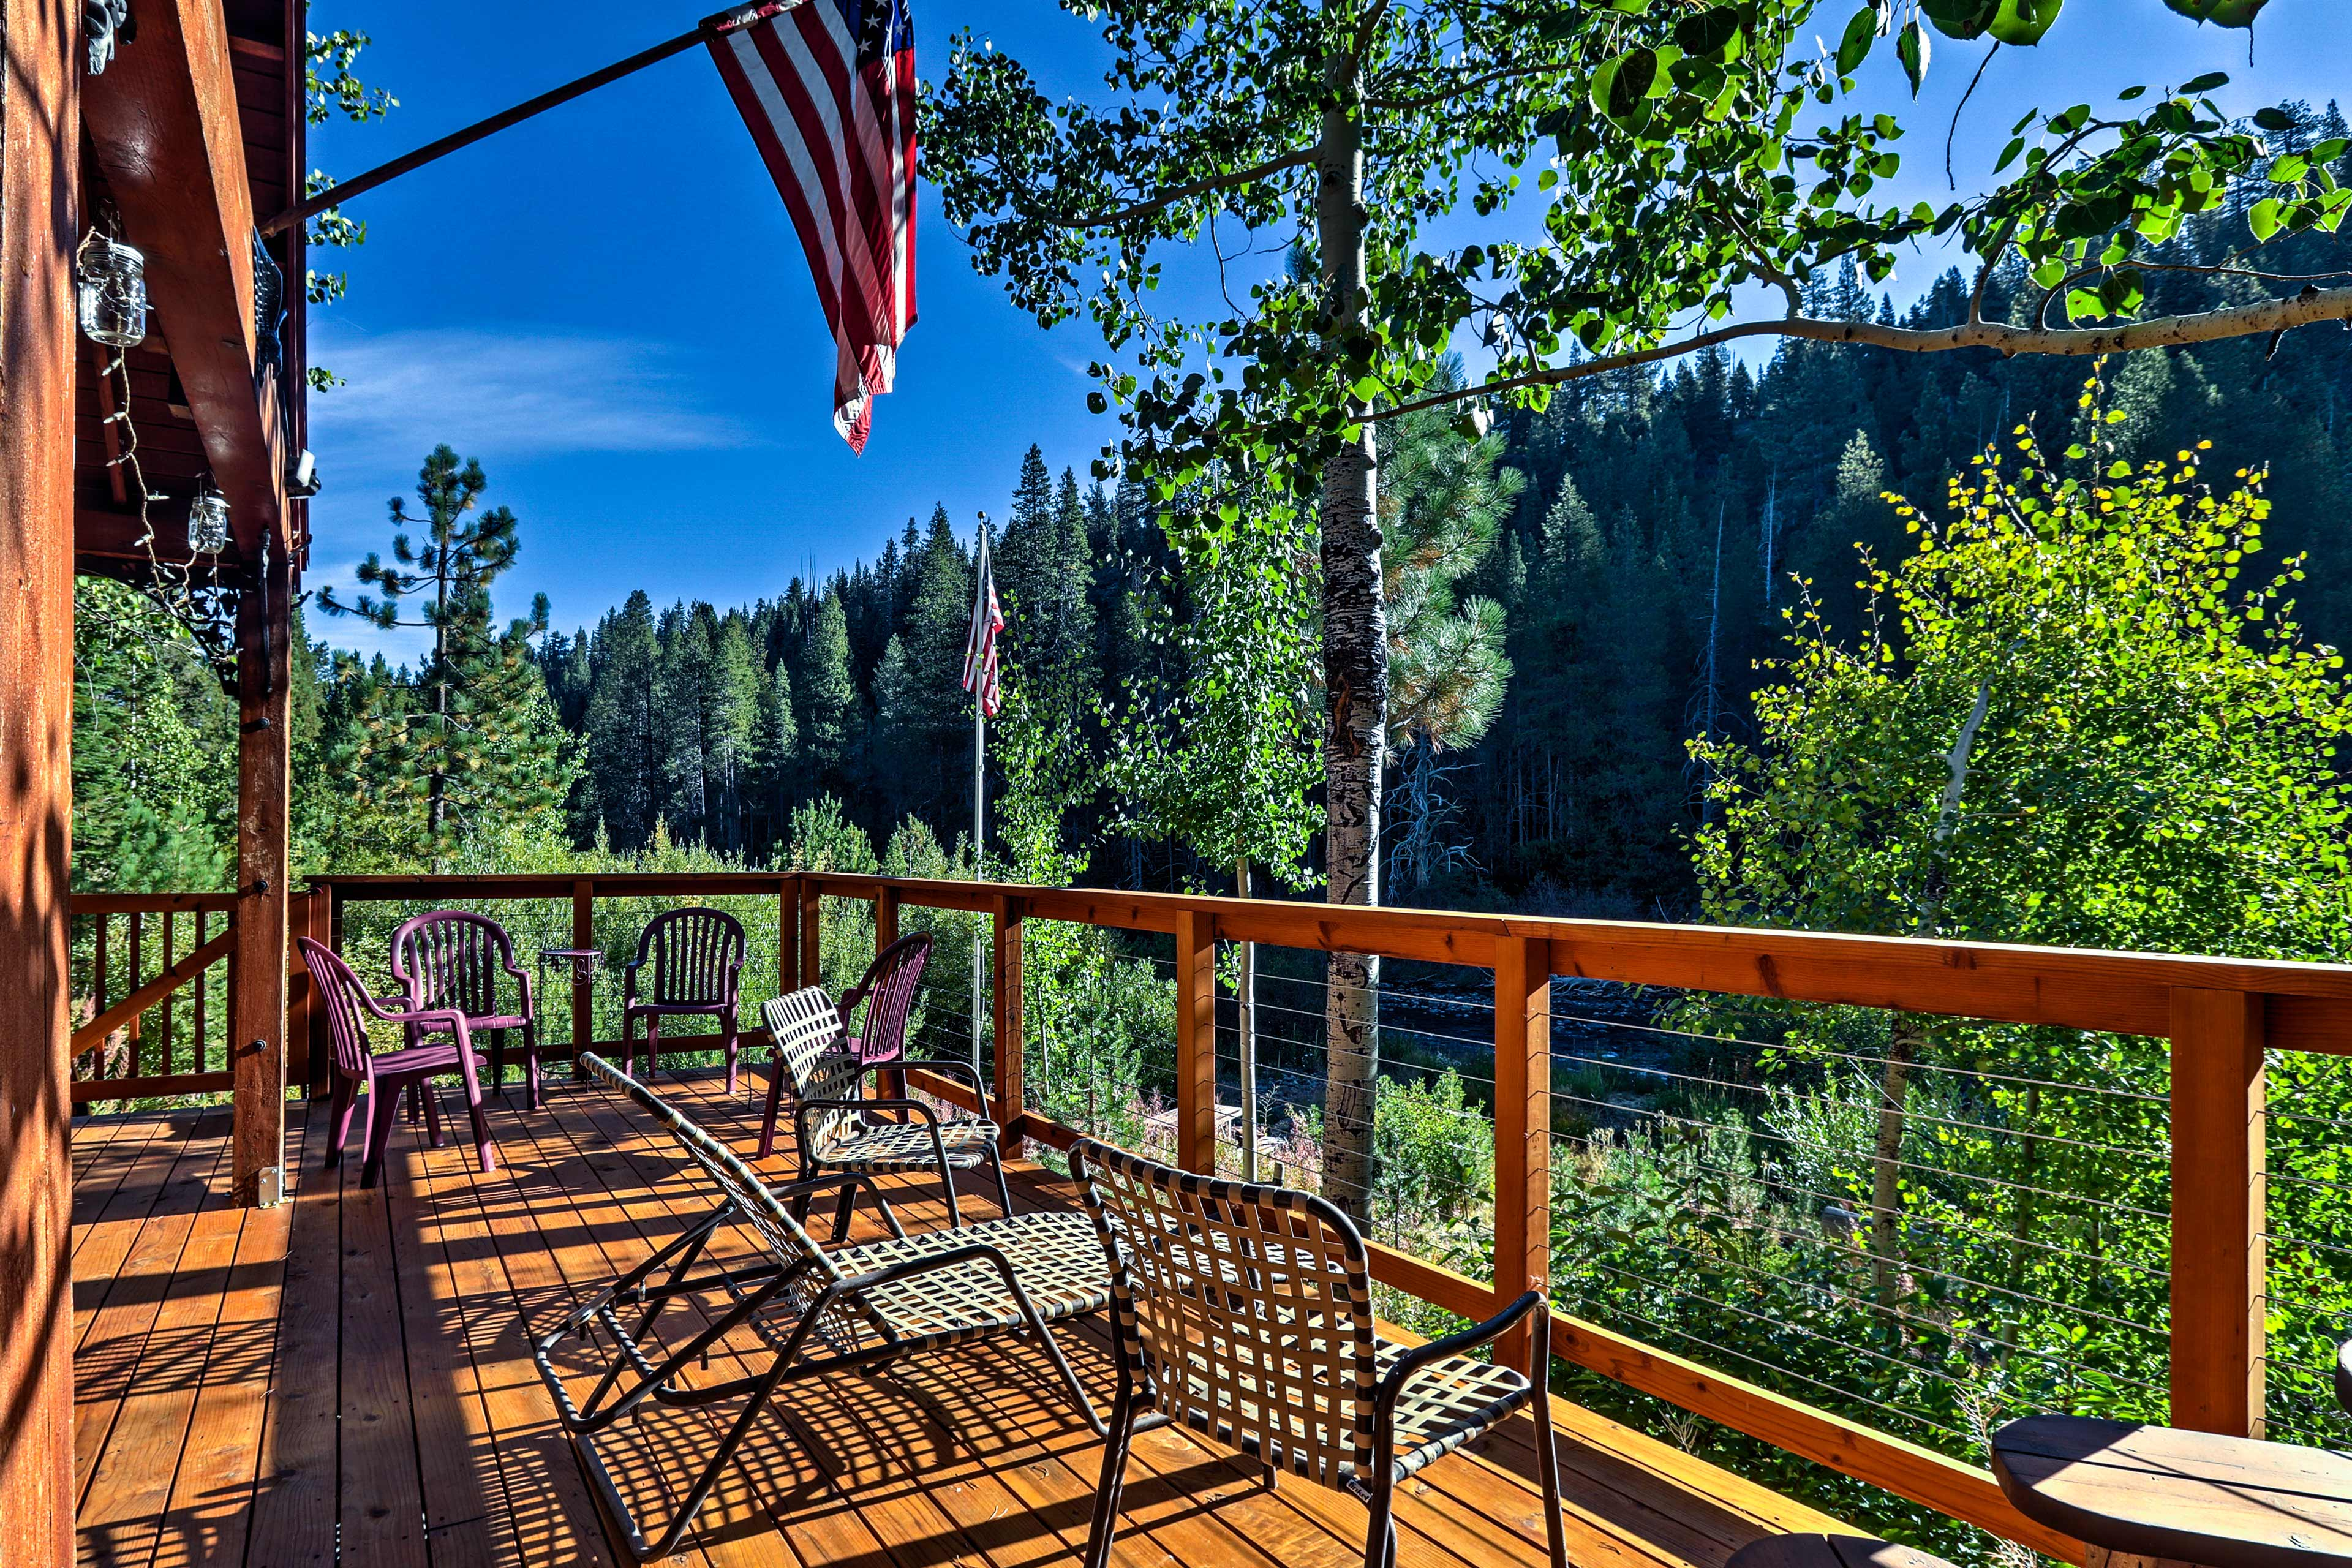 Escape to this Truckee riverfront vacation rental with 3 bedrooms and 1.5 baths.